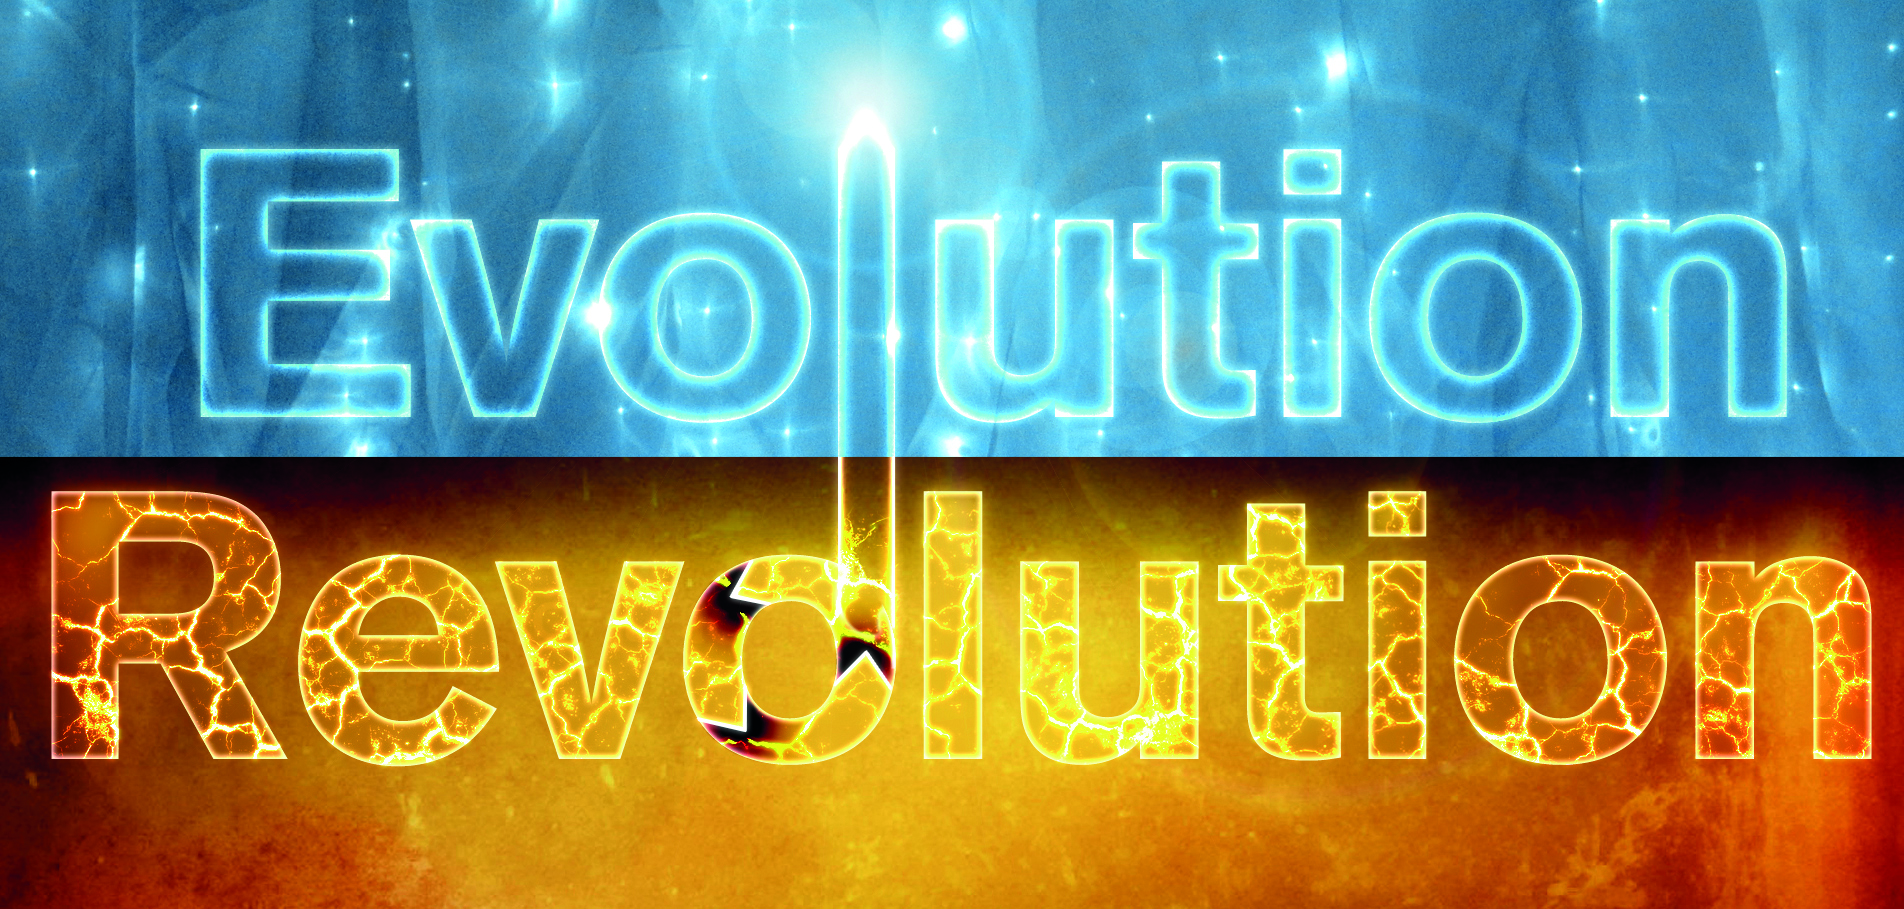 From Revolution to Evolution